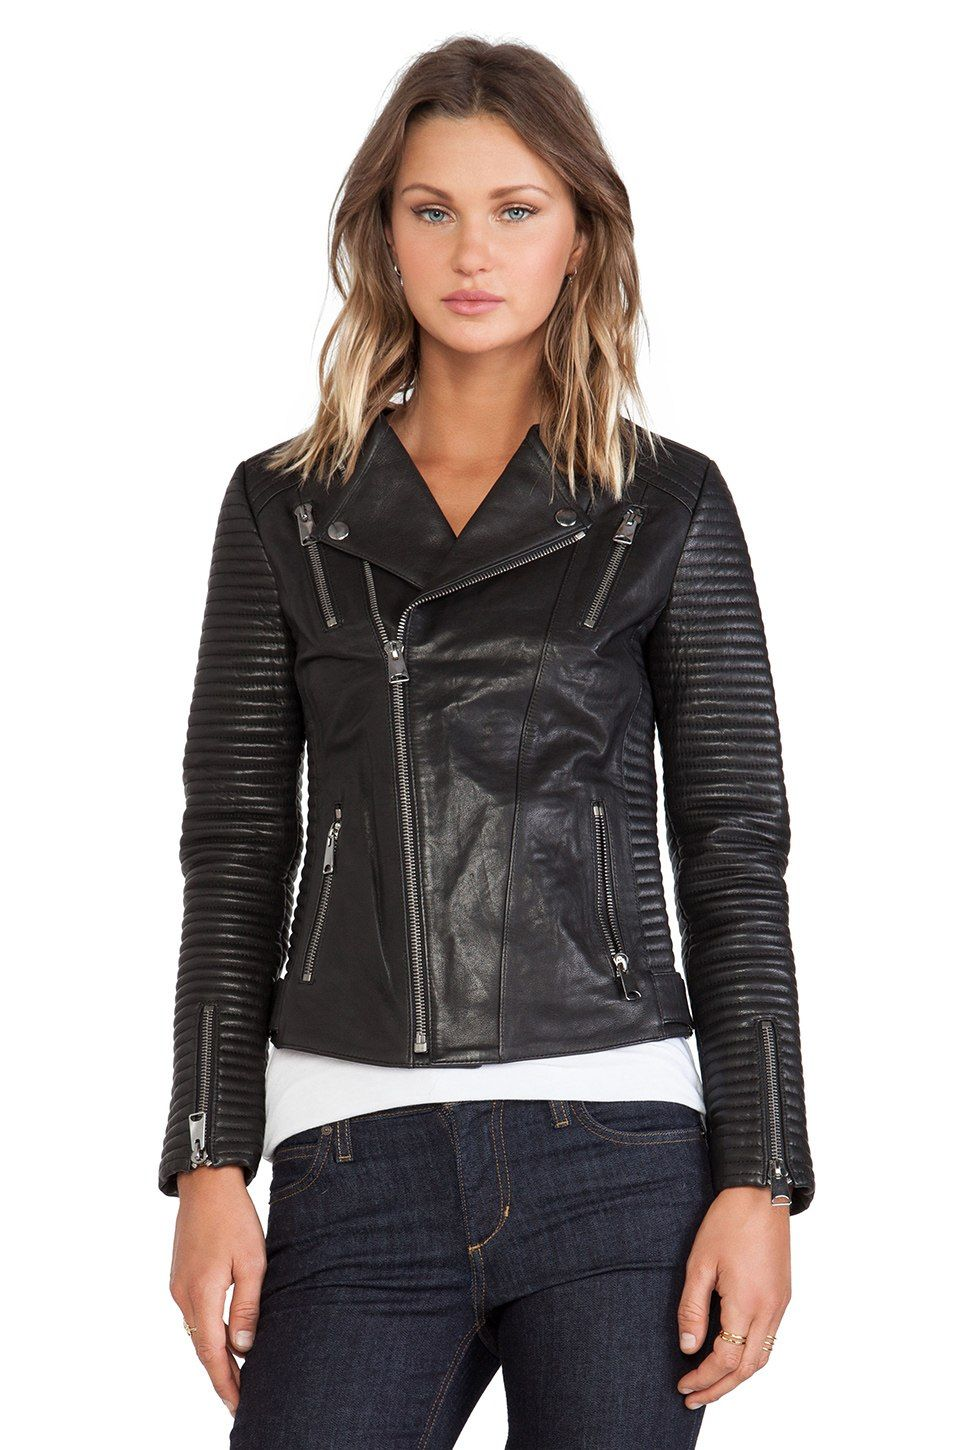 ANINE BING Classic Leather Jacket in Black REVOLVE